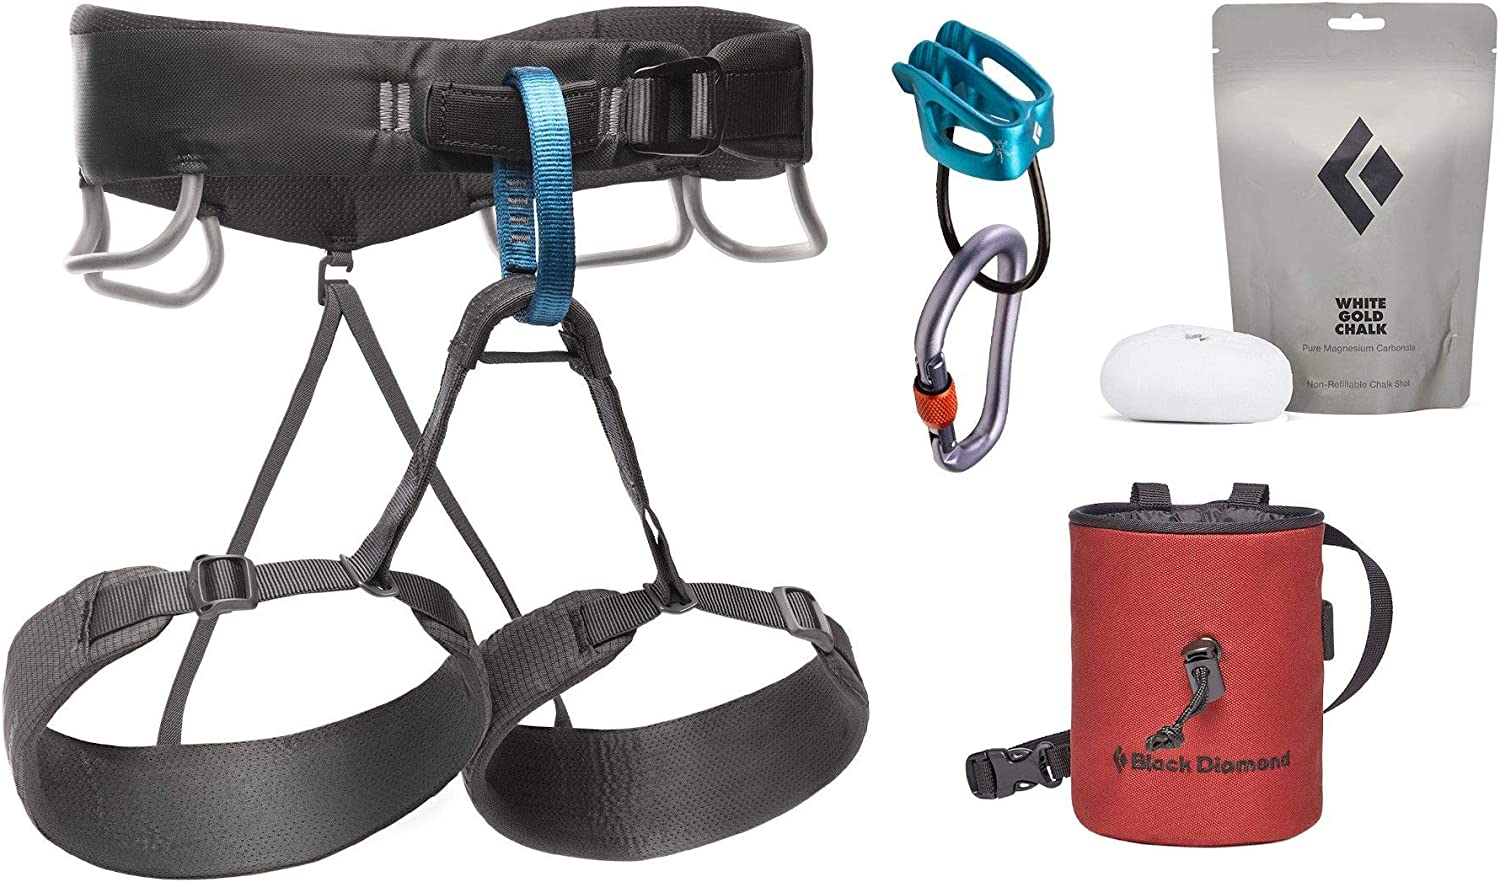 Black Diamond Momentum Harness Package : Sports & Outdoors